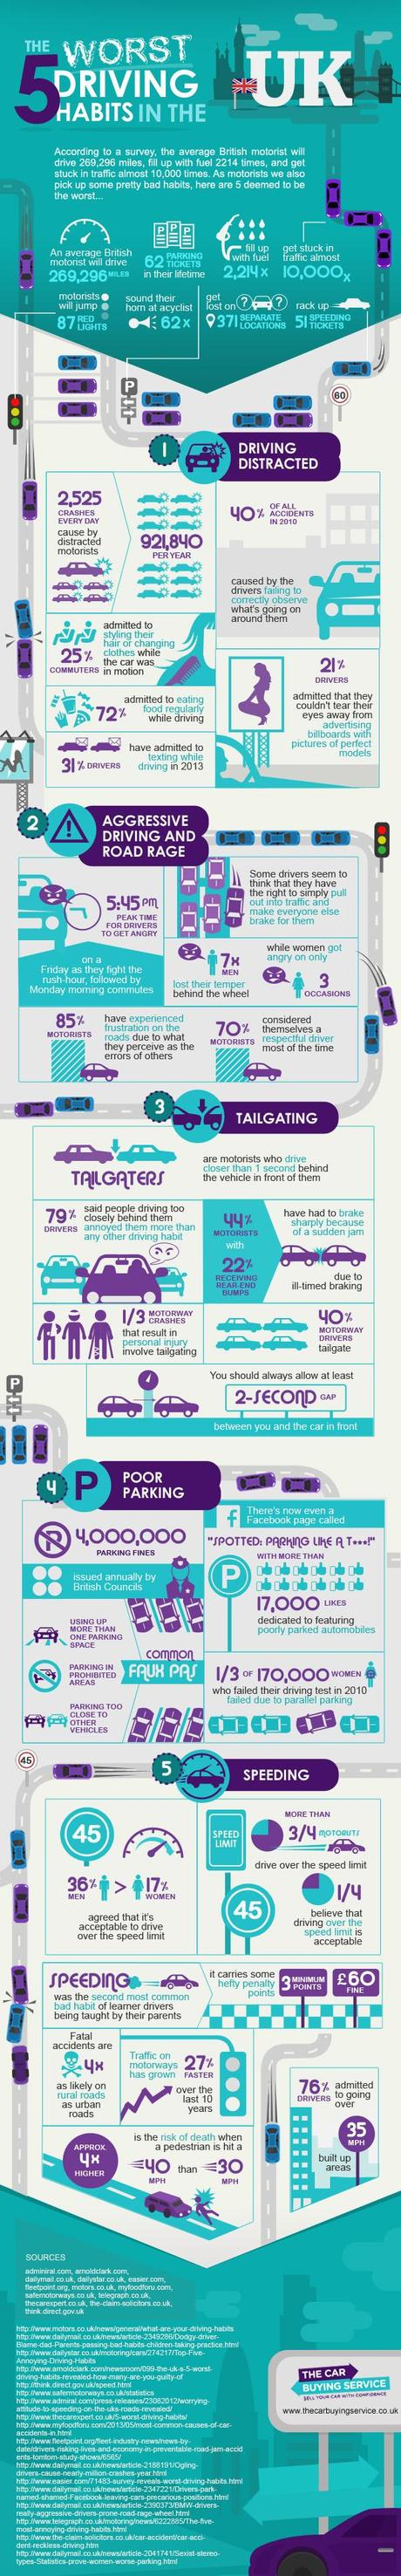 5-Worst-Driving-Habit-in-the-UK-Infographic